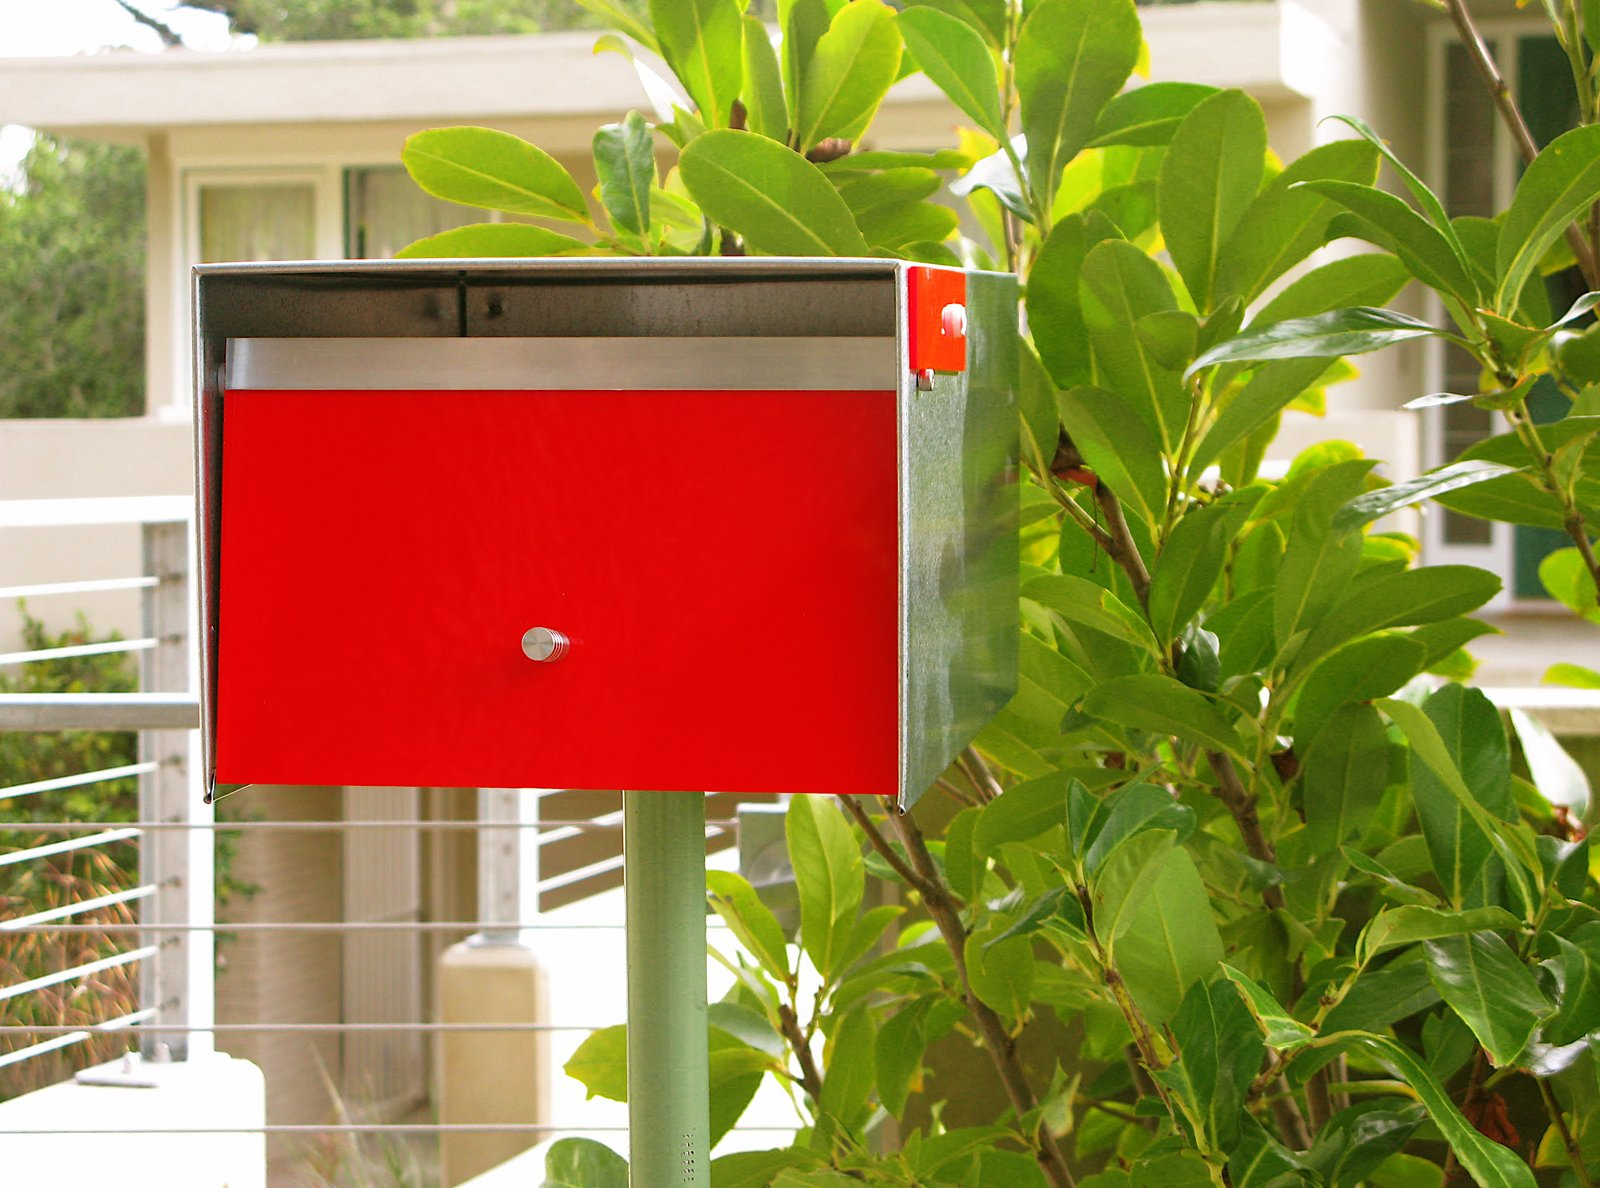 The Neutra Box is handmade from locally sourced, upcycled sheet metal remnants, reclaimed mostly from outfits in Richmond, California. The box retails for $199.00 and is available in red and black.  Photo 5 of 6 in 8 Best Modern Mailboxes to Buy